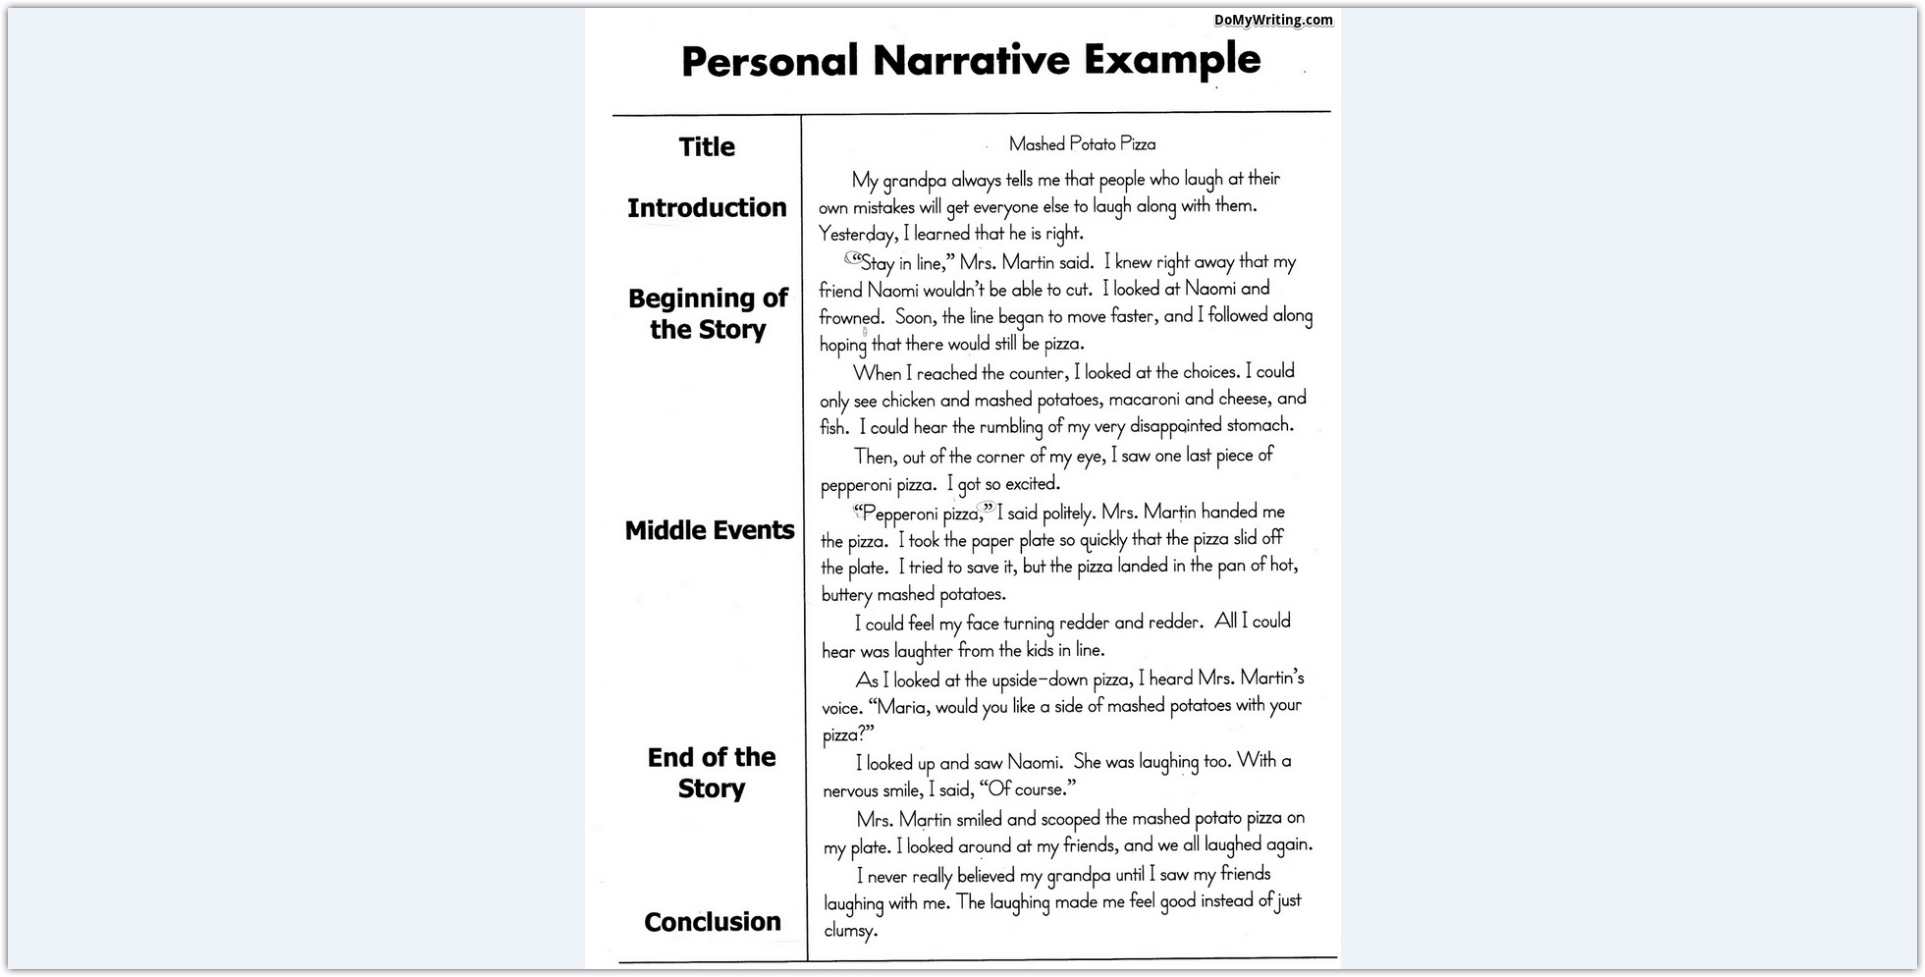 002 Narrative Essay Example What Is Breathtaking A In Third Person Pdf Most Like Full